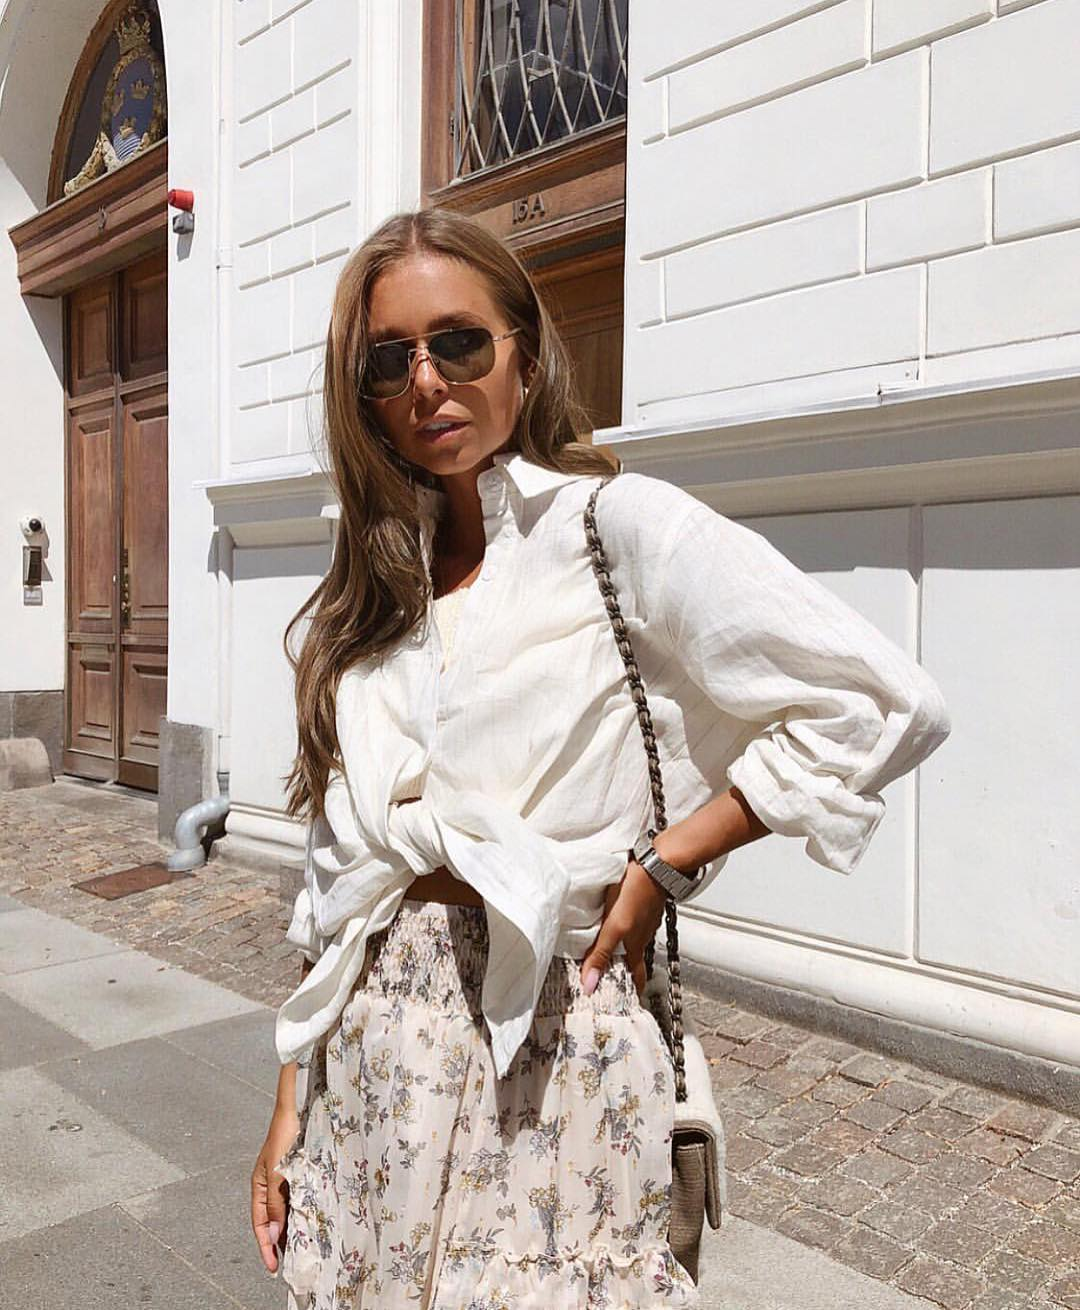 White Linen Front Tied Shirt And High Rise Floral Skirt For Summer 2019